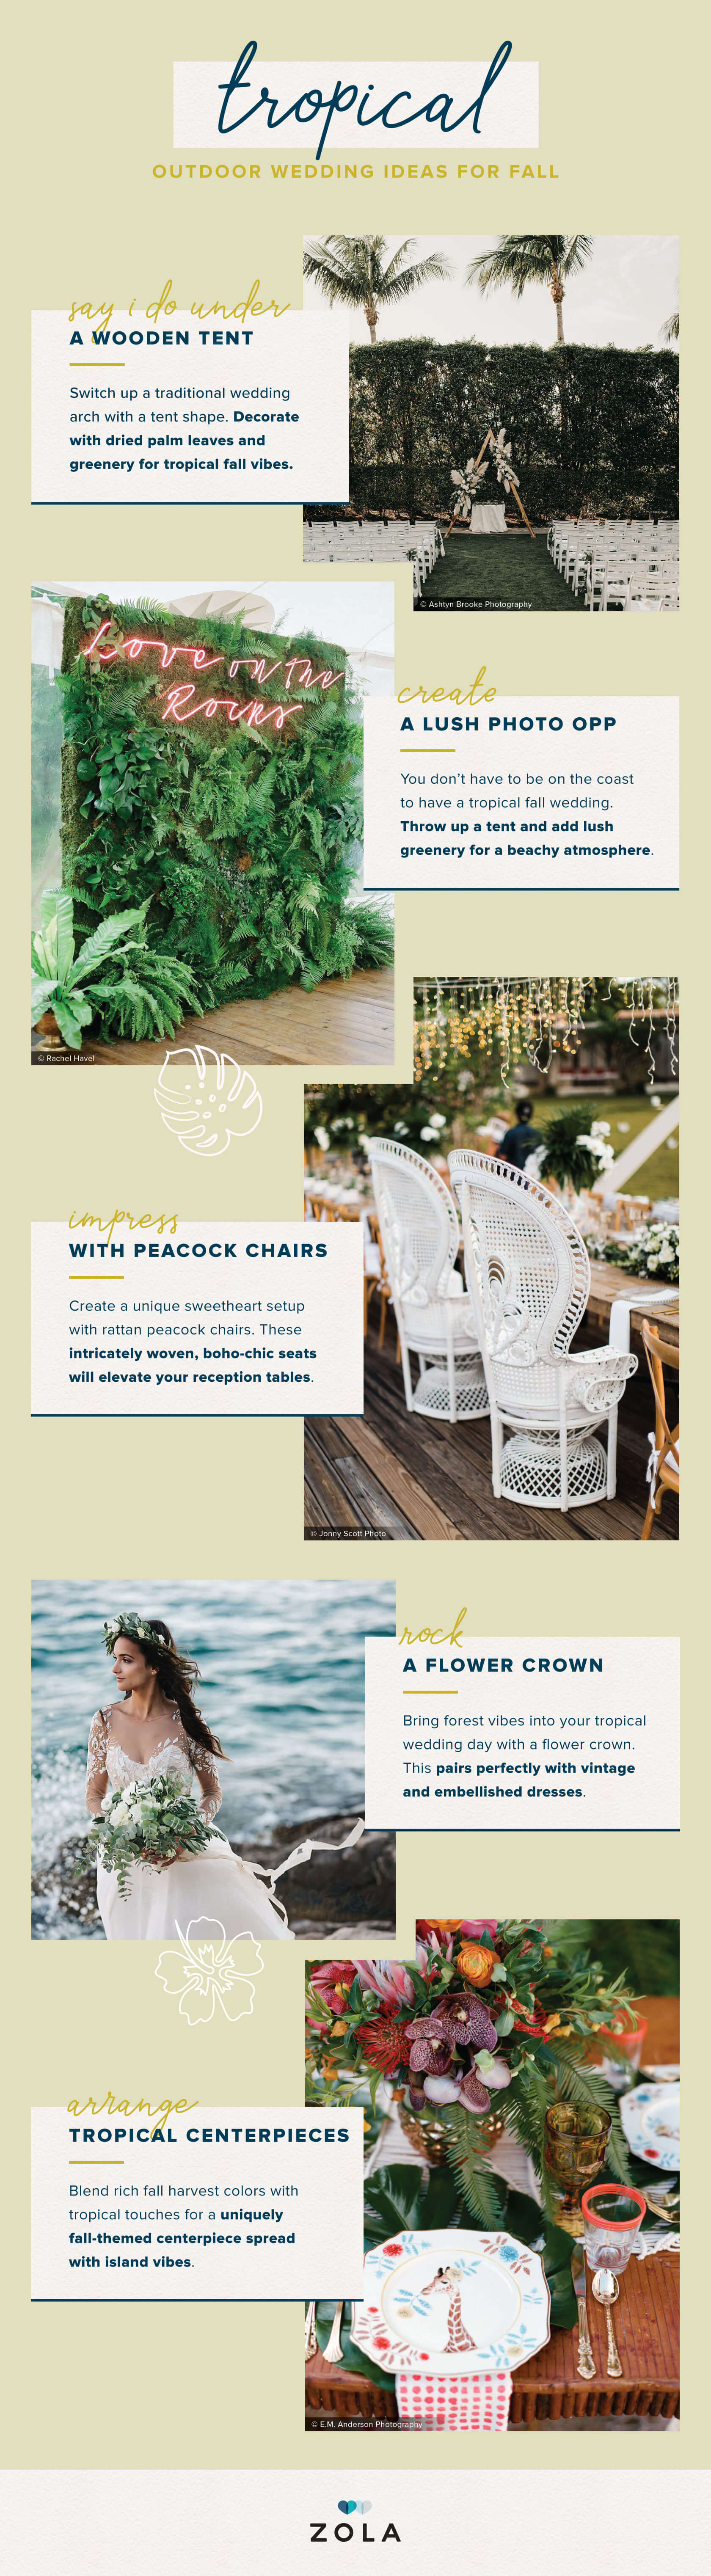 25 Outdoor Wedding Ideas For Fall We Can T Get Enough Of Zola Expert Wedding Advice